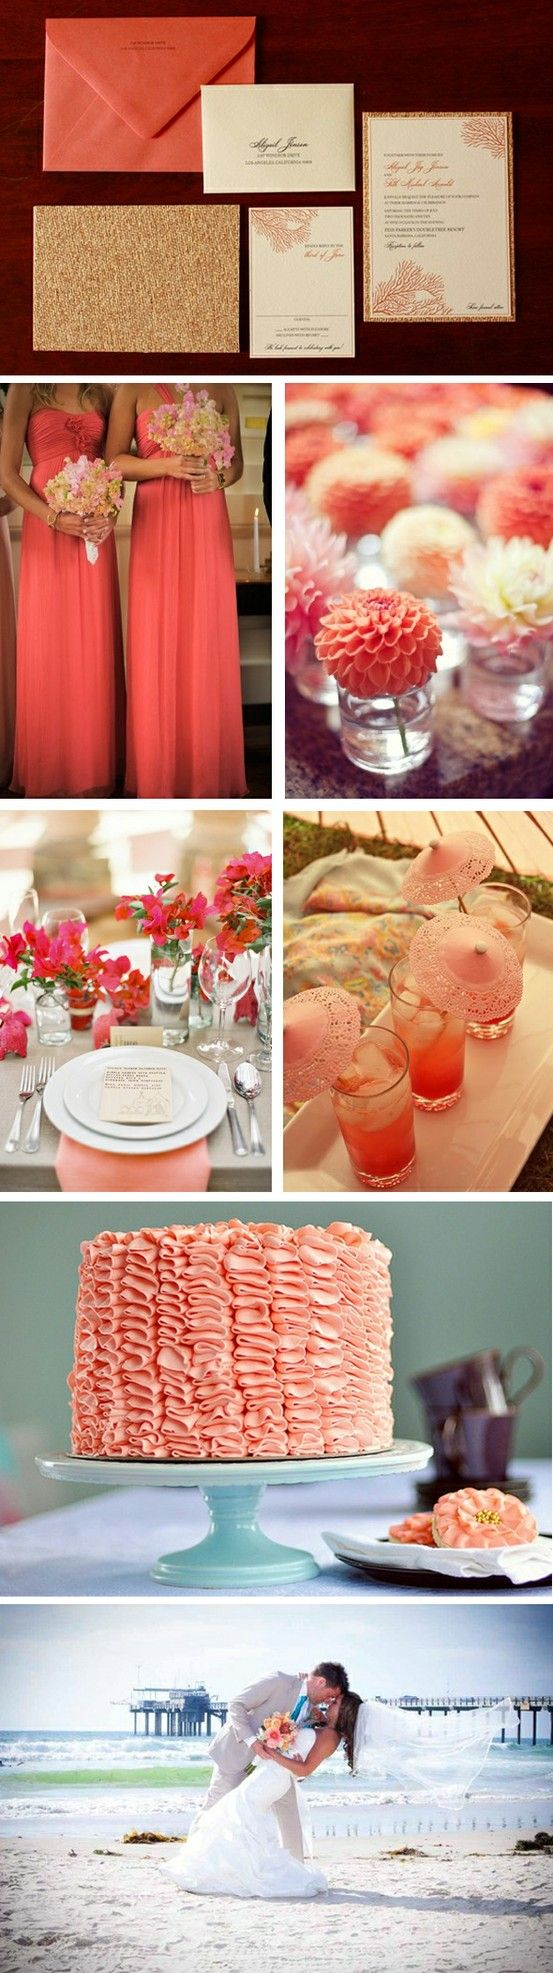 59 Best Coral Wedding Ideas Images On Pinterest | Coral Wedding Colors,  Marriage And Wedding Color Palettes